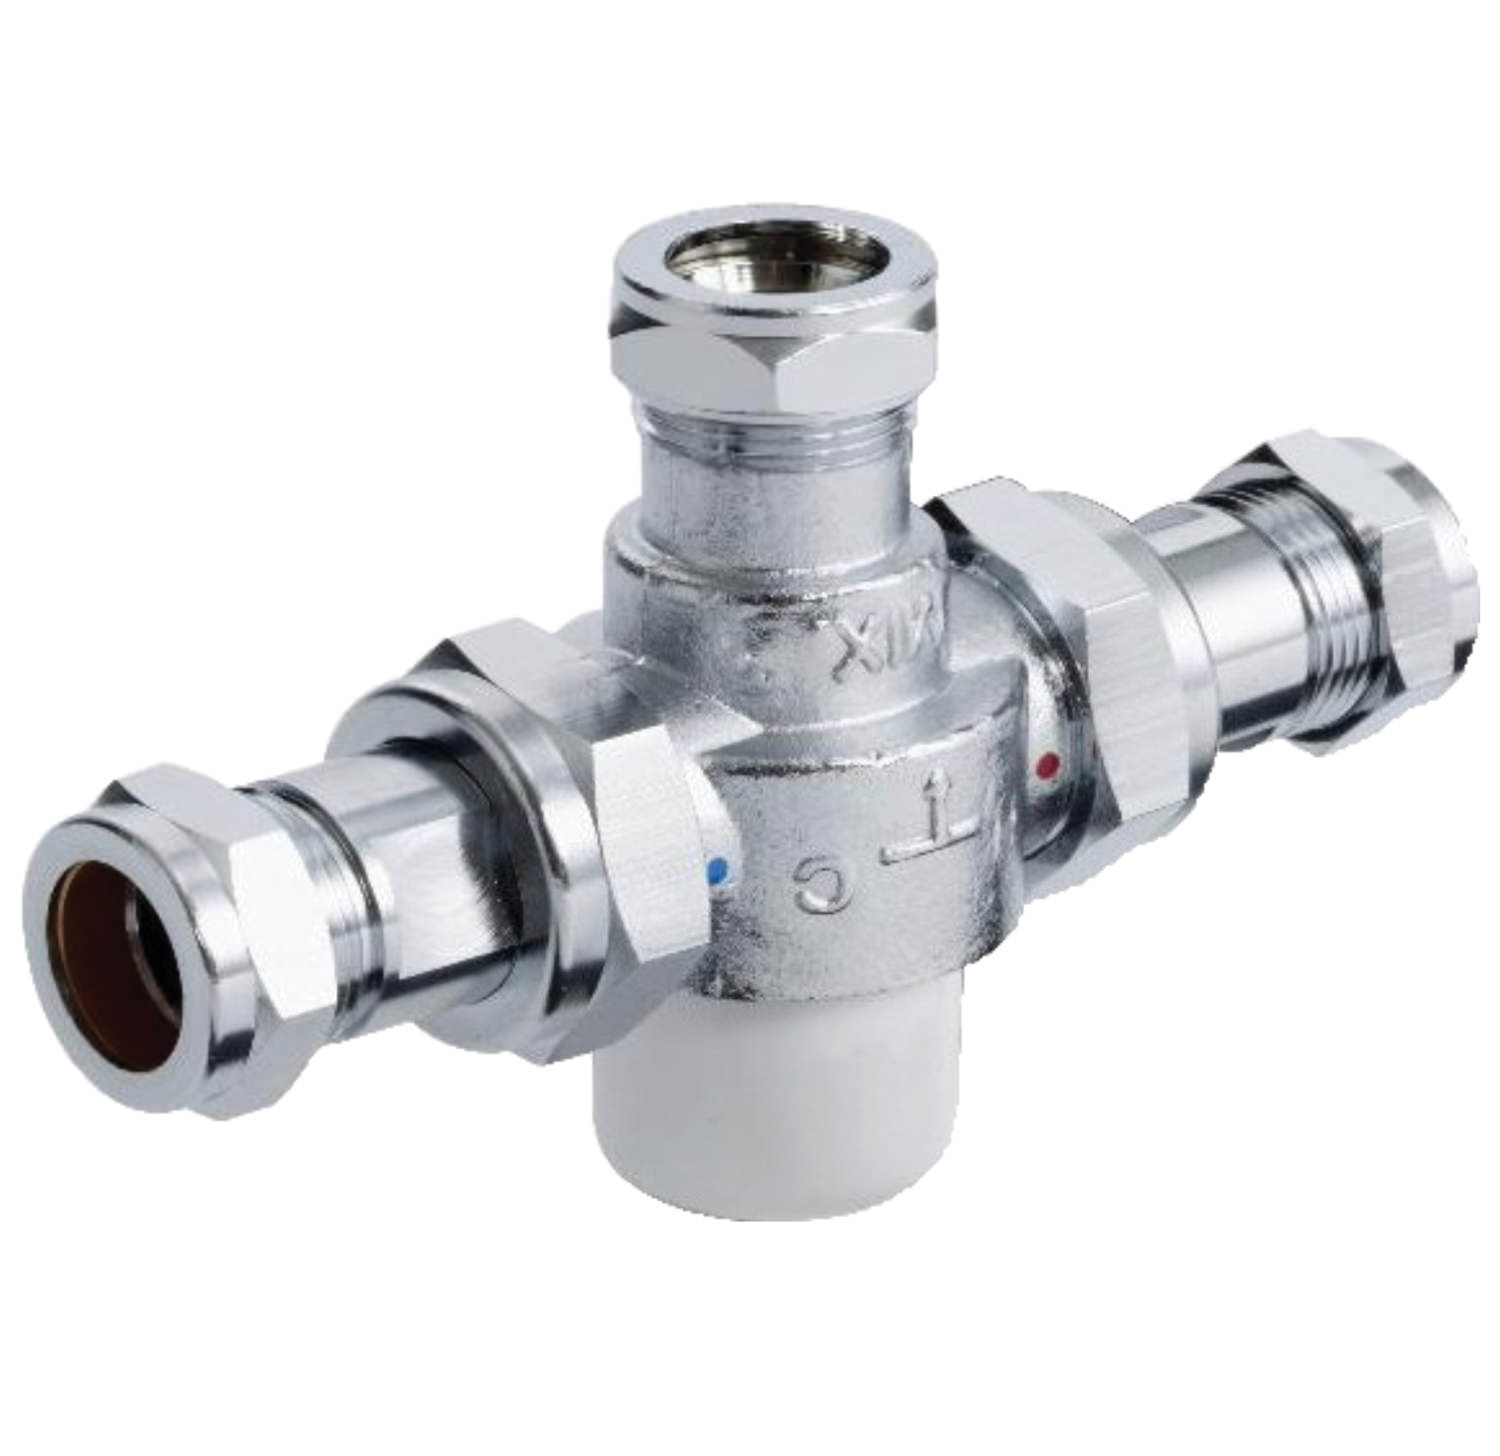 Twyford Sola 22mm Thermostatic Mixing Valve